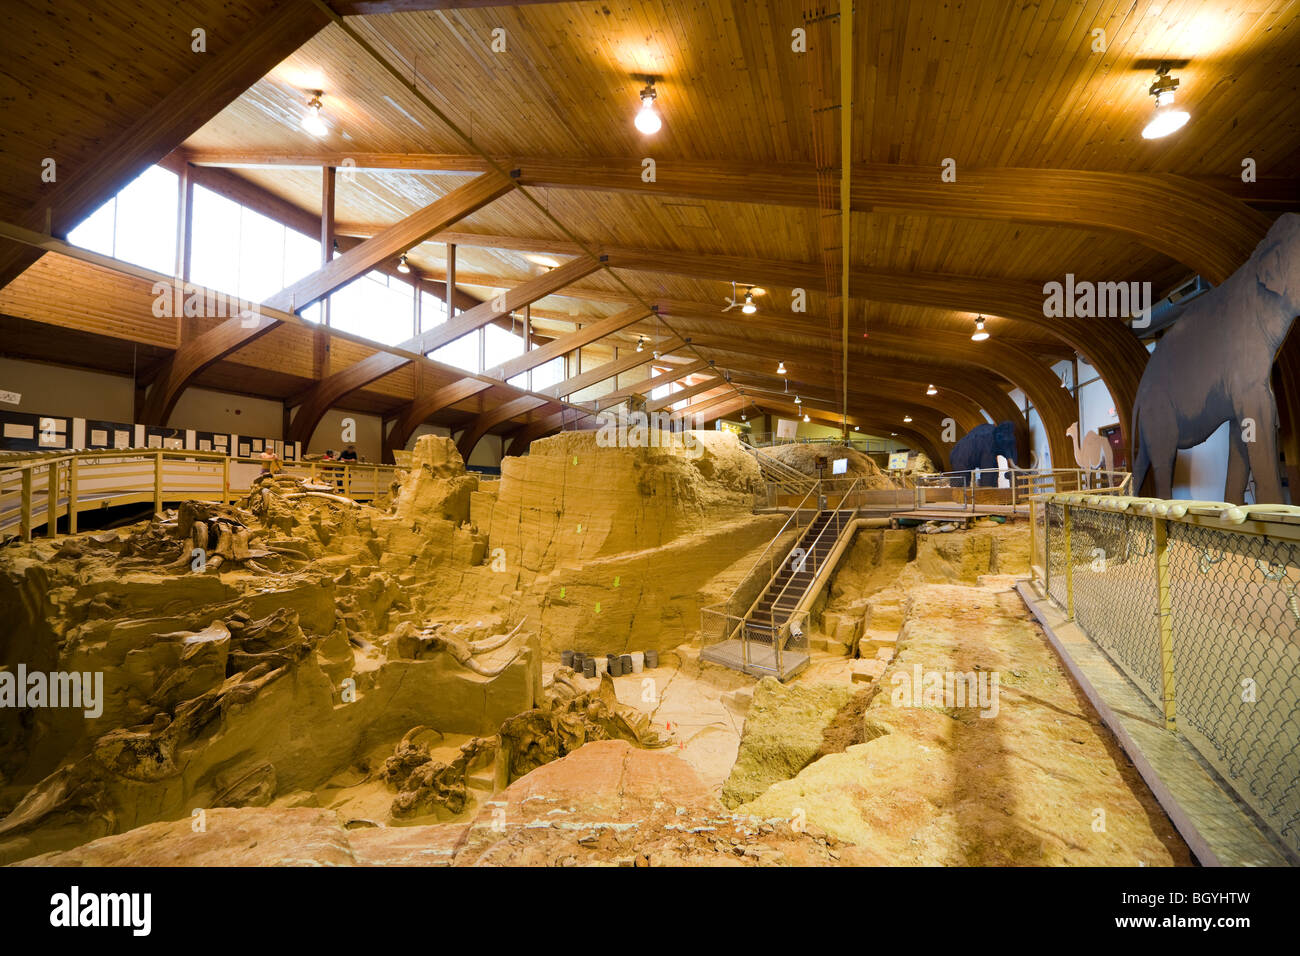 The Mammoth Site Museum, Hot Springs SD. Interior view of the bonebed with mammoth bones tusks fossils in paleontology - Stock Image